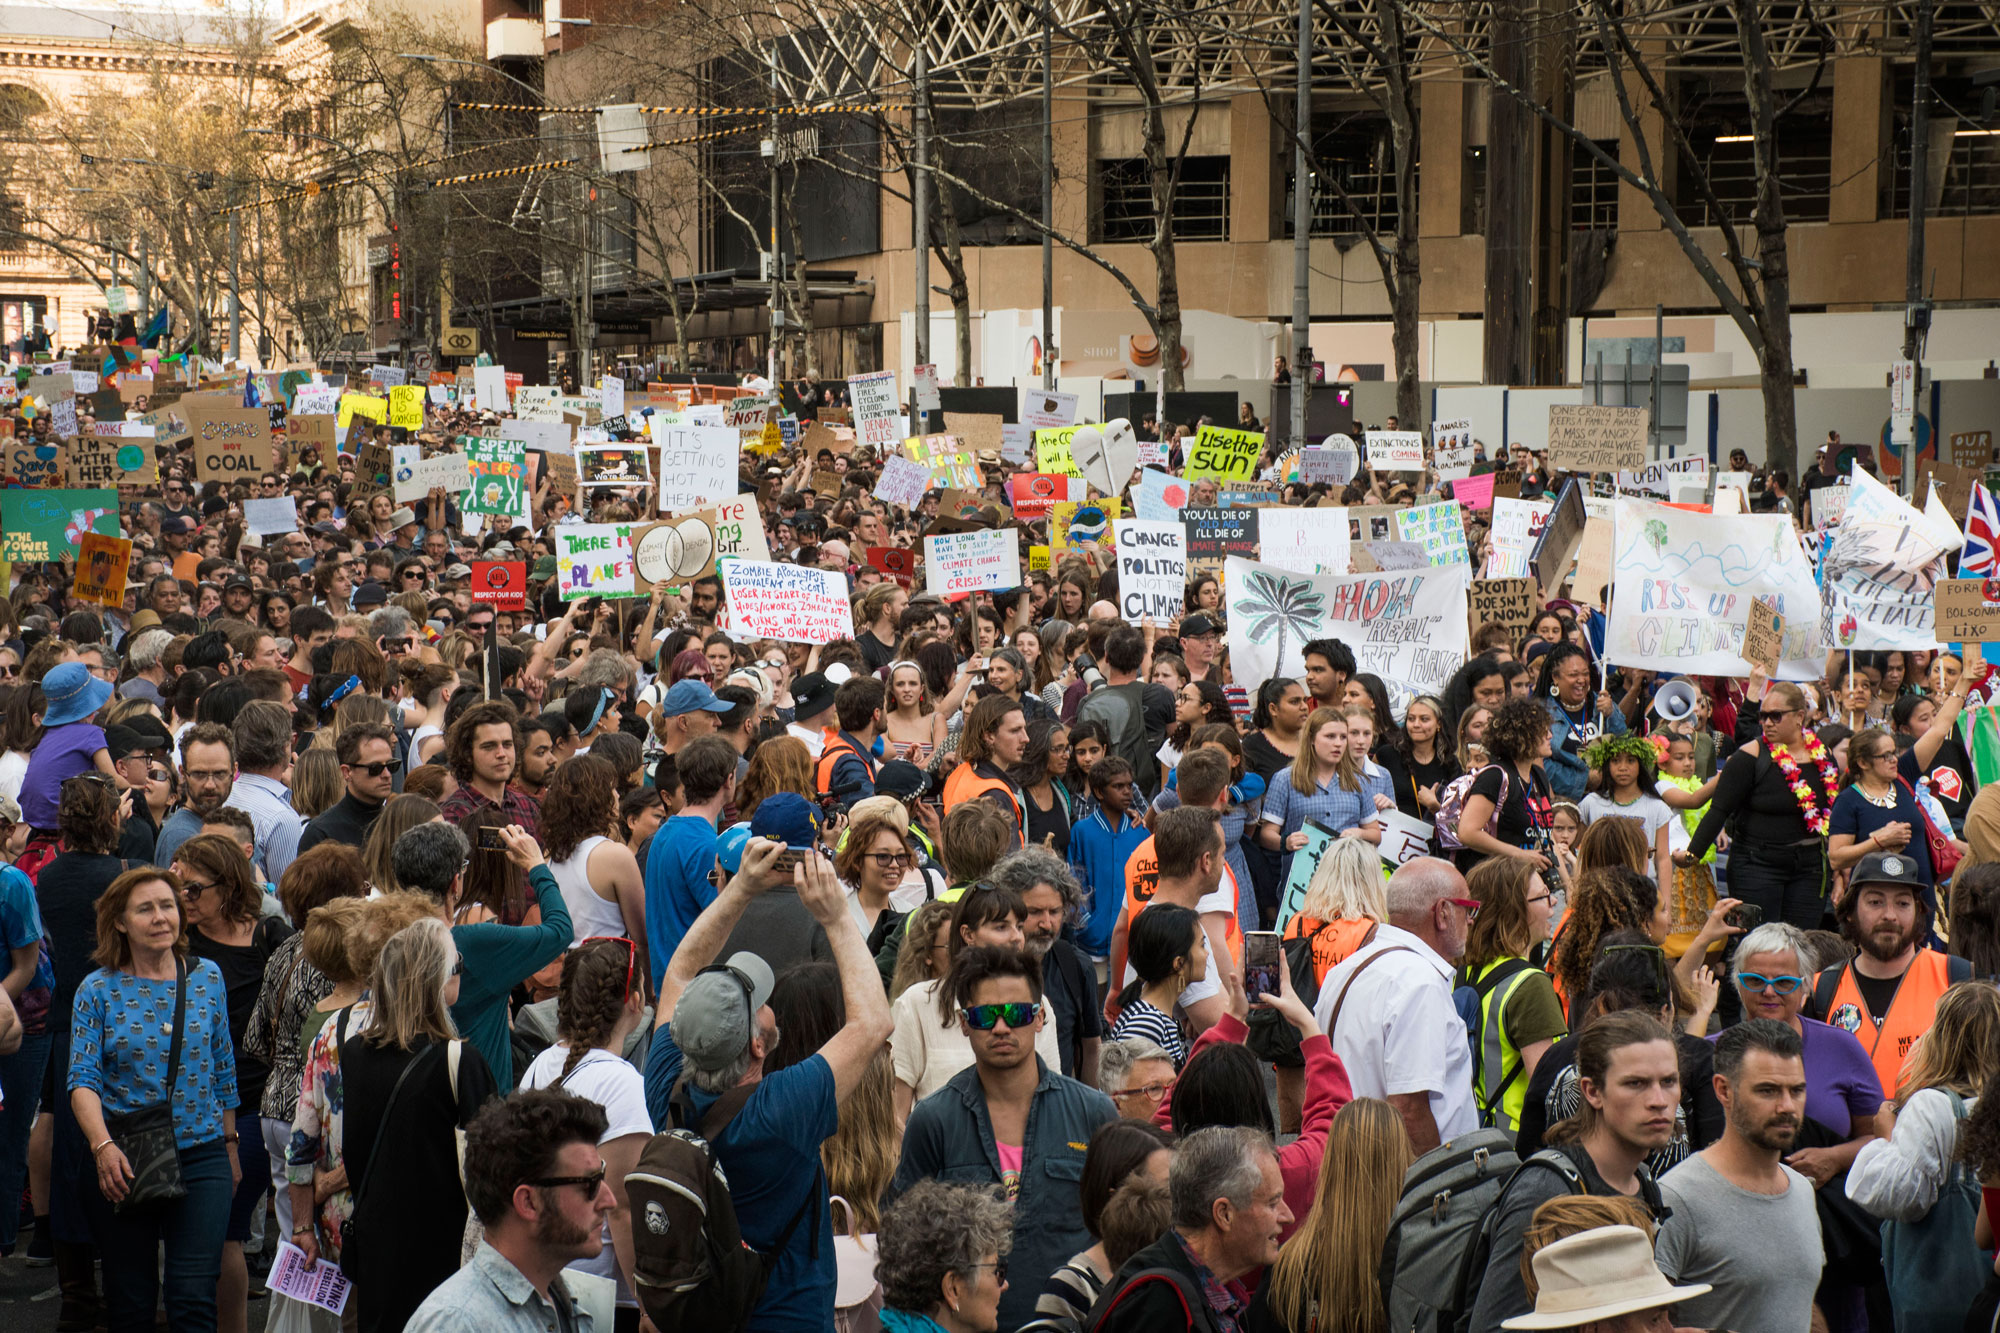 Crowds congregate on the corner of Collins and Exhibition street.  Photo: Liam Petterson